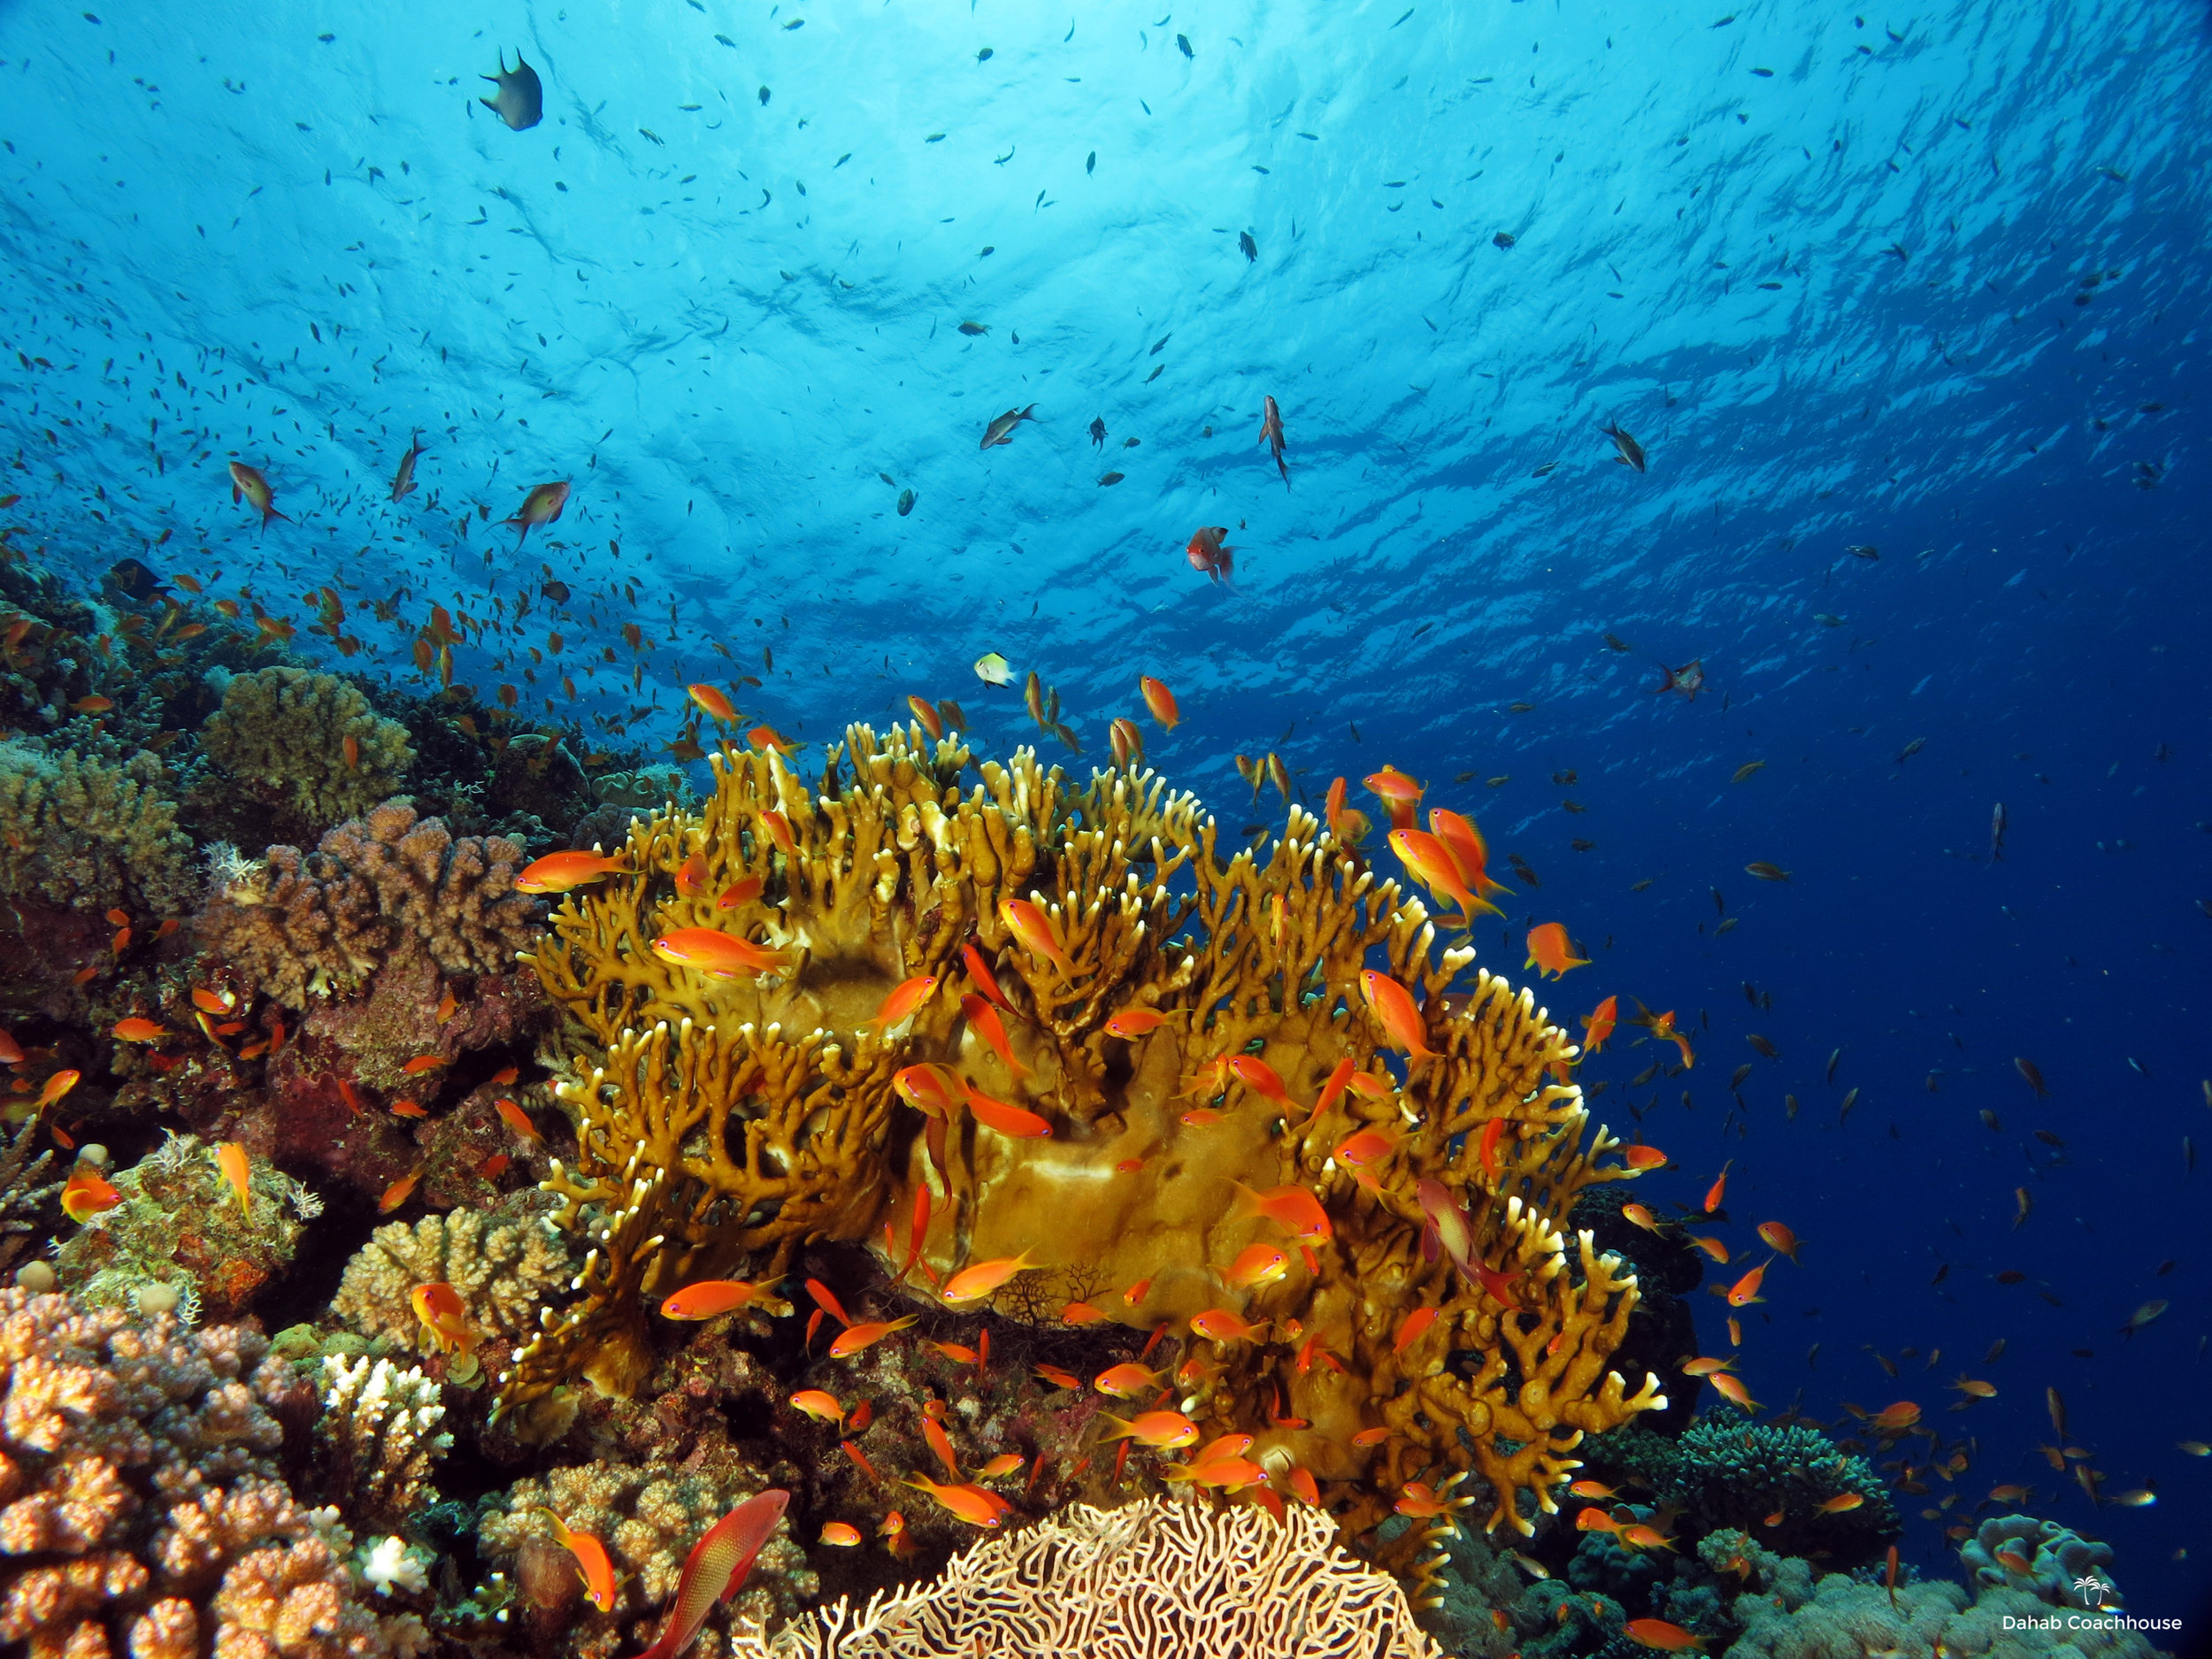 Dahab_Coachhouse_Egypt_Red_Sea_Diving_Beach_Accommodation_Holiday_Travel_Coral_reef.JPG